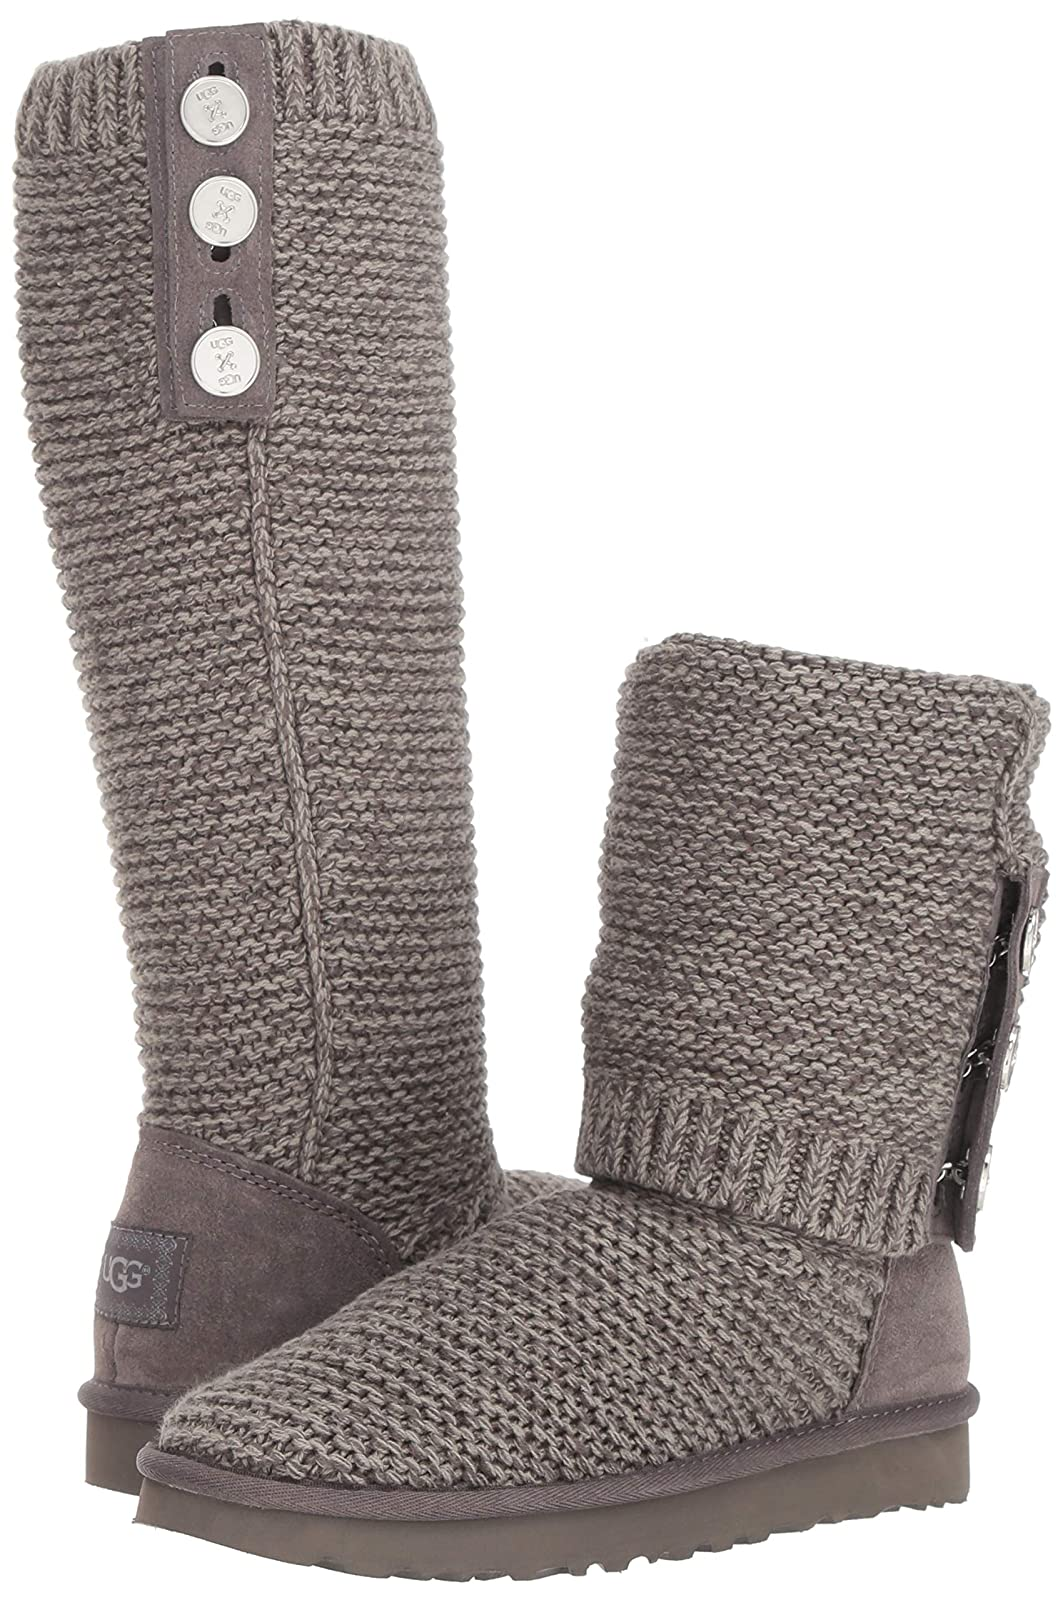 UGG Women's W PURL Cardy Knit Fashion Boot 1094949 - 6